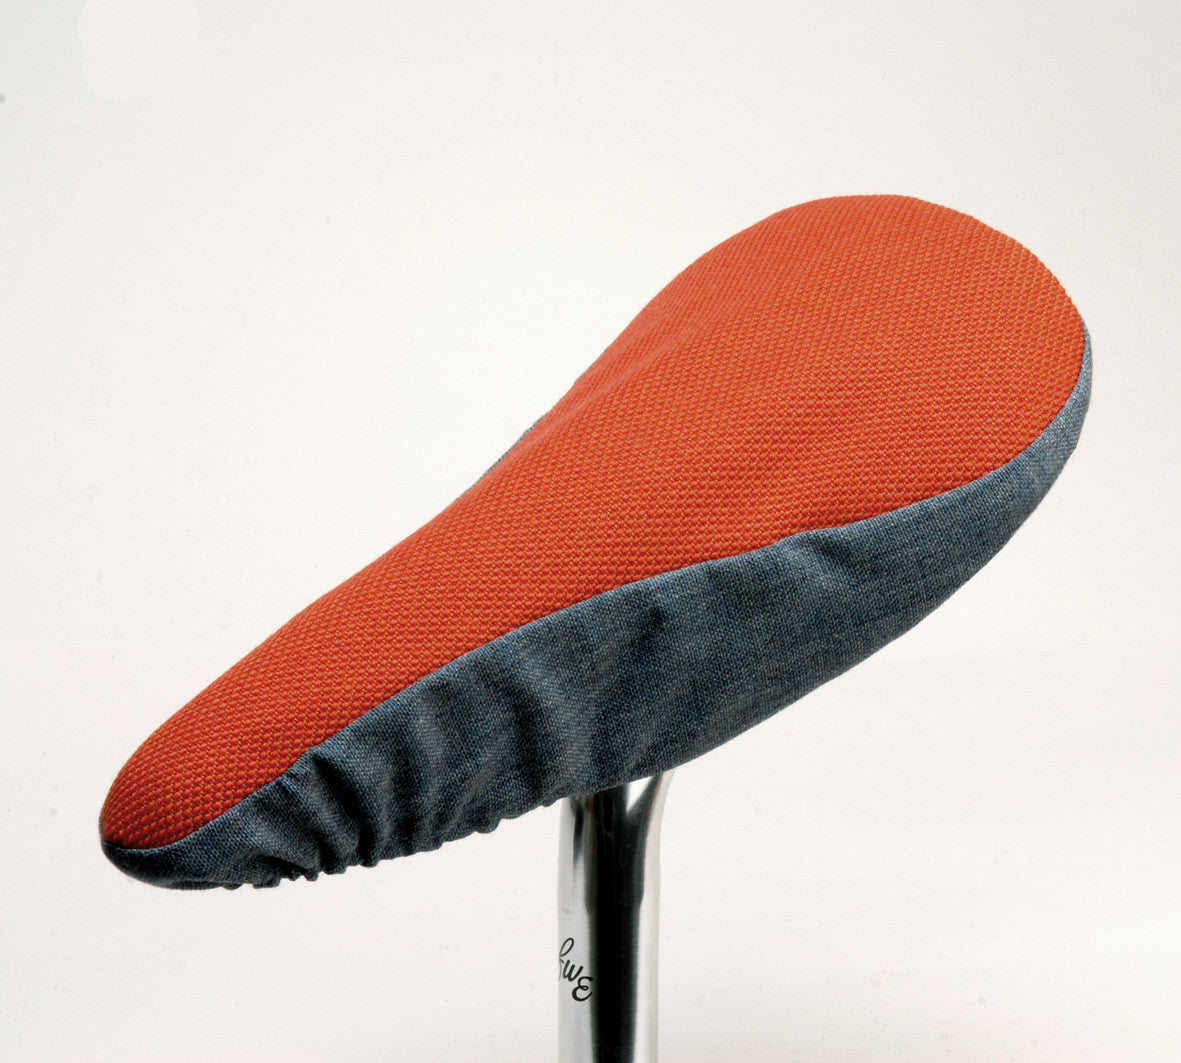 Alan Saddle Cover - Soft Red & Blue